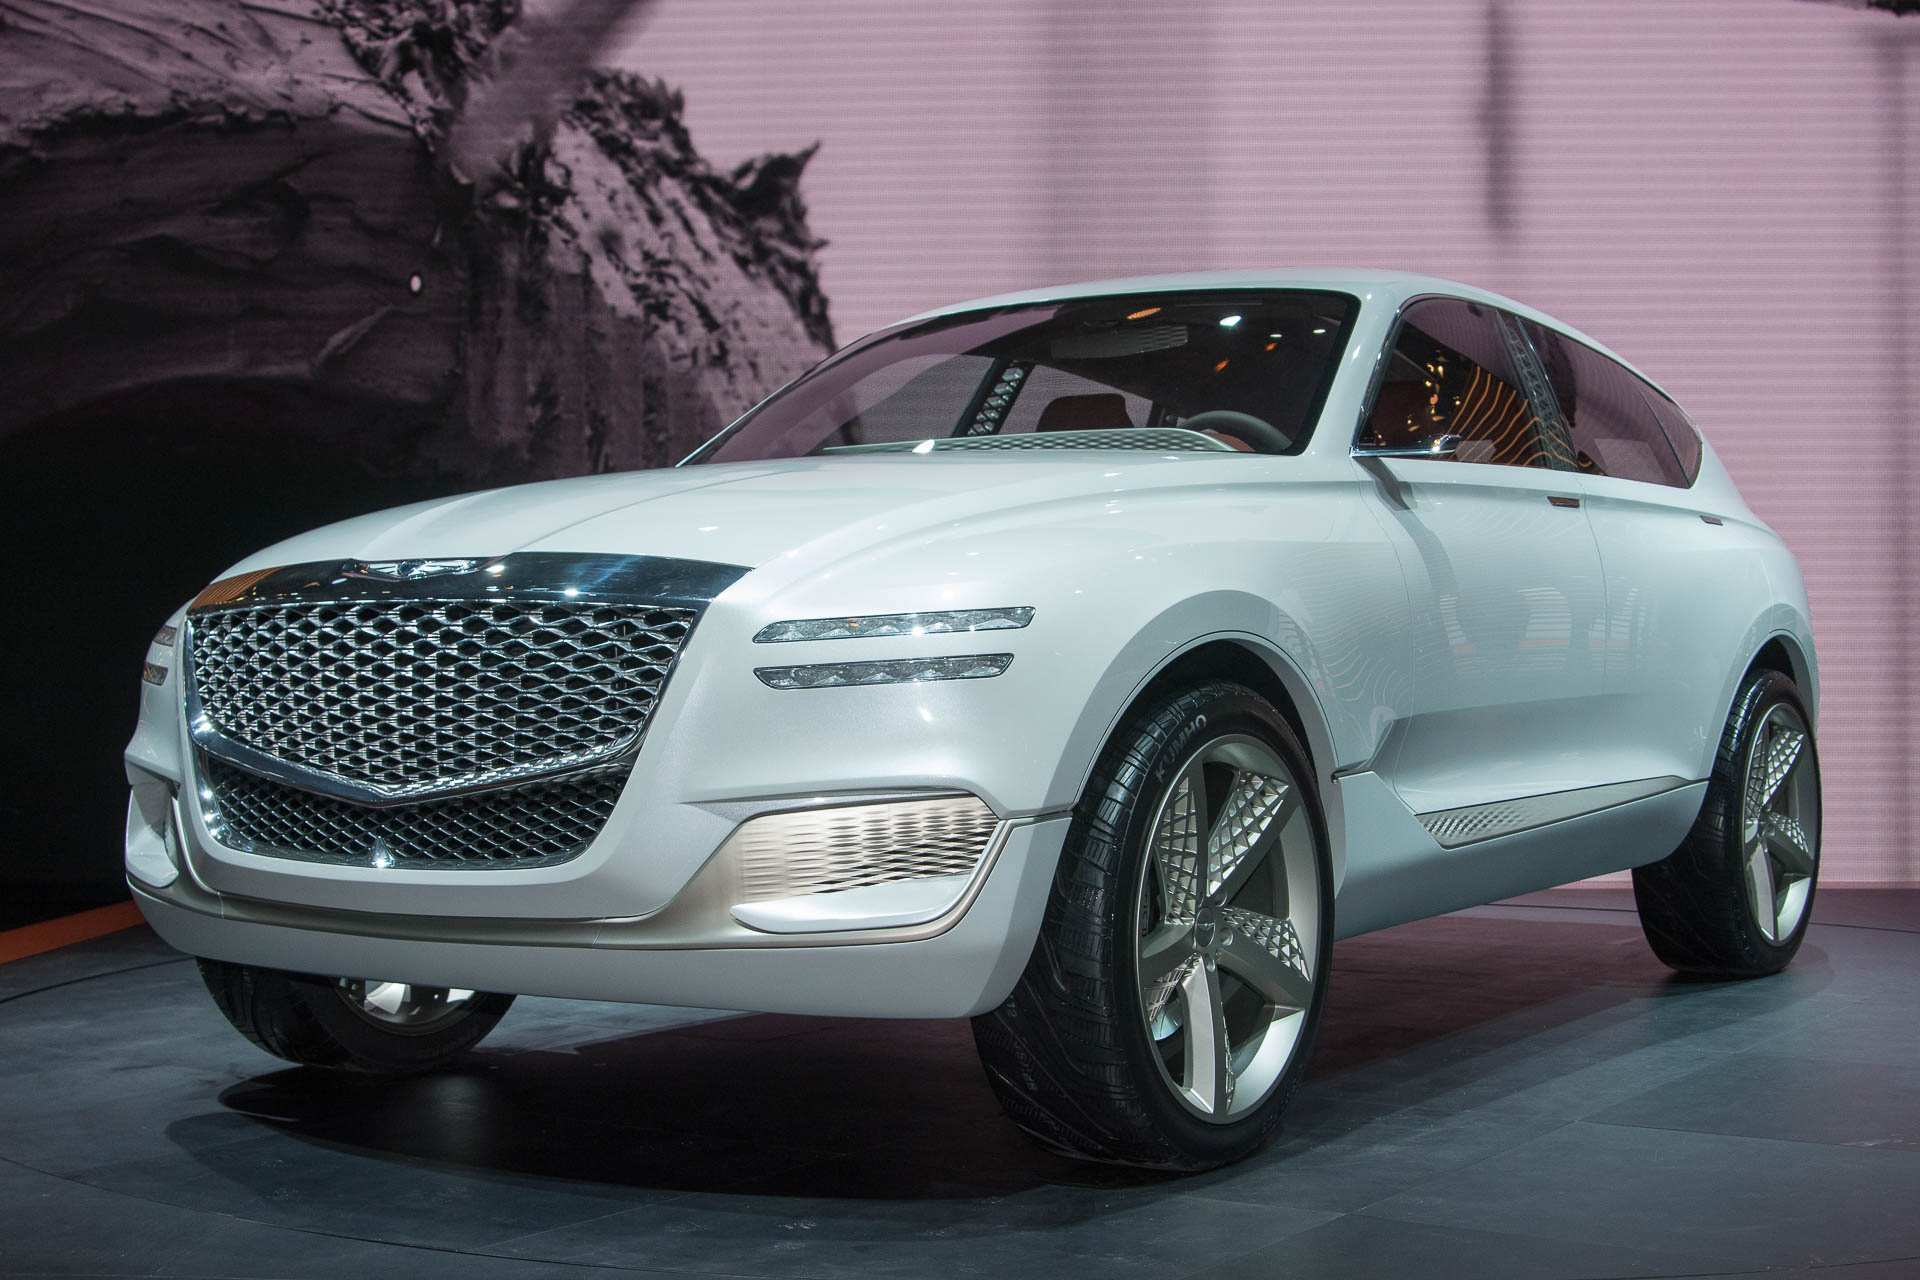 94 Concept of 2019 Genesis Gv80 Engine by 2019 Genesis Gv80